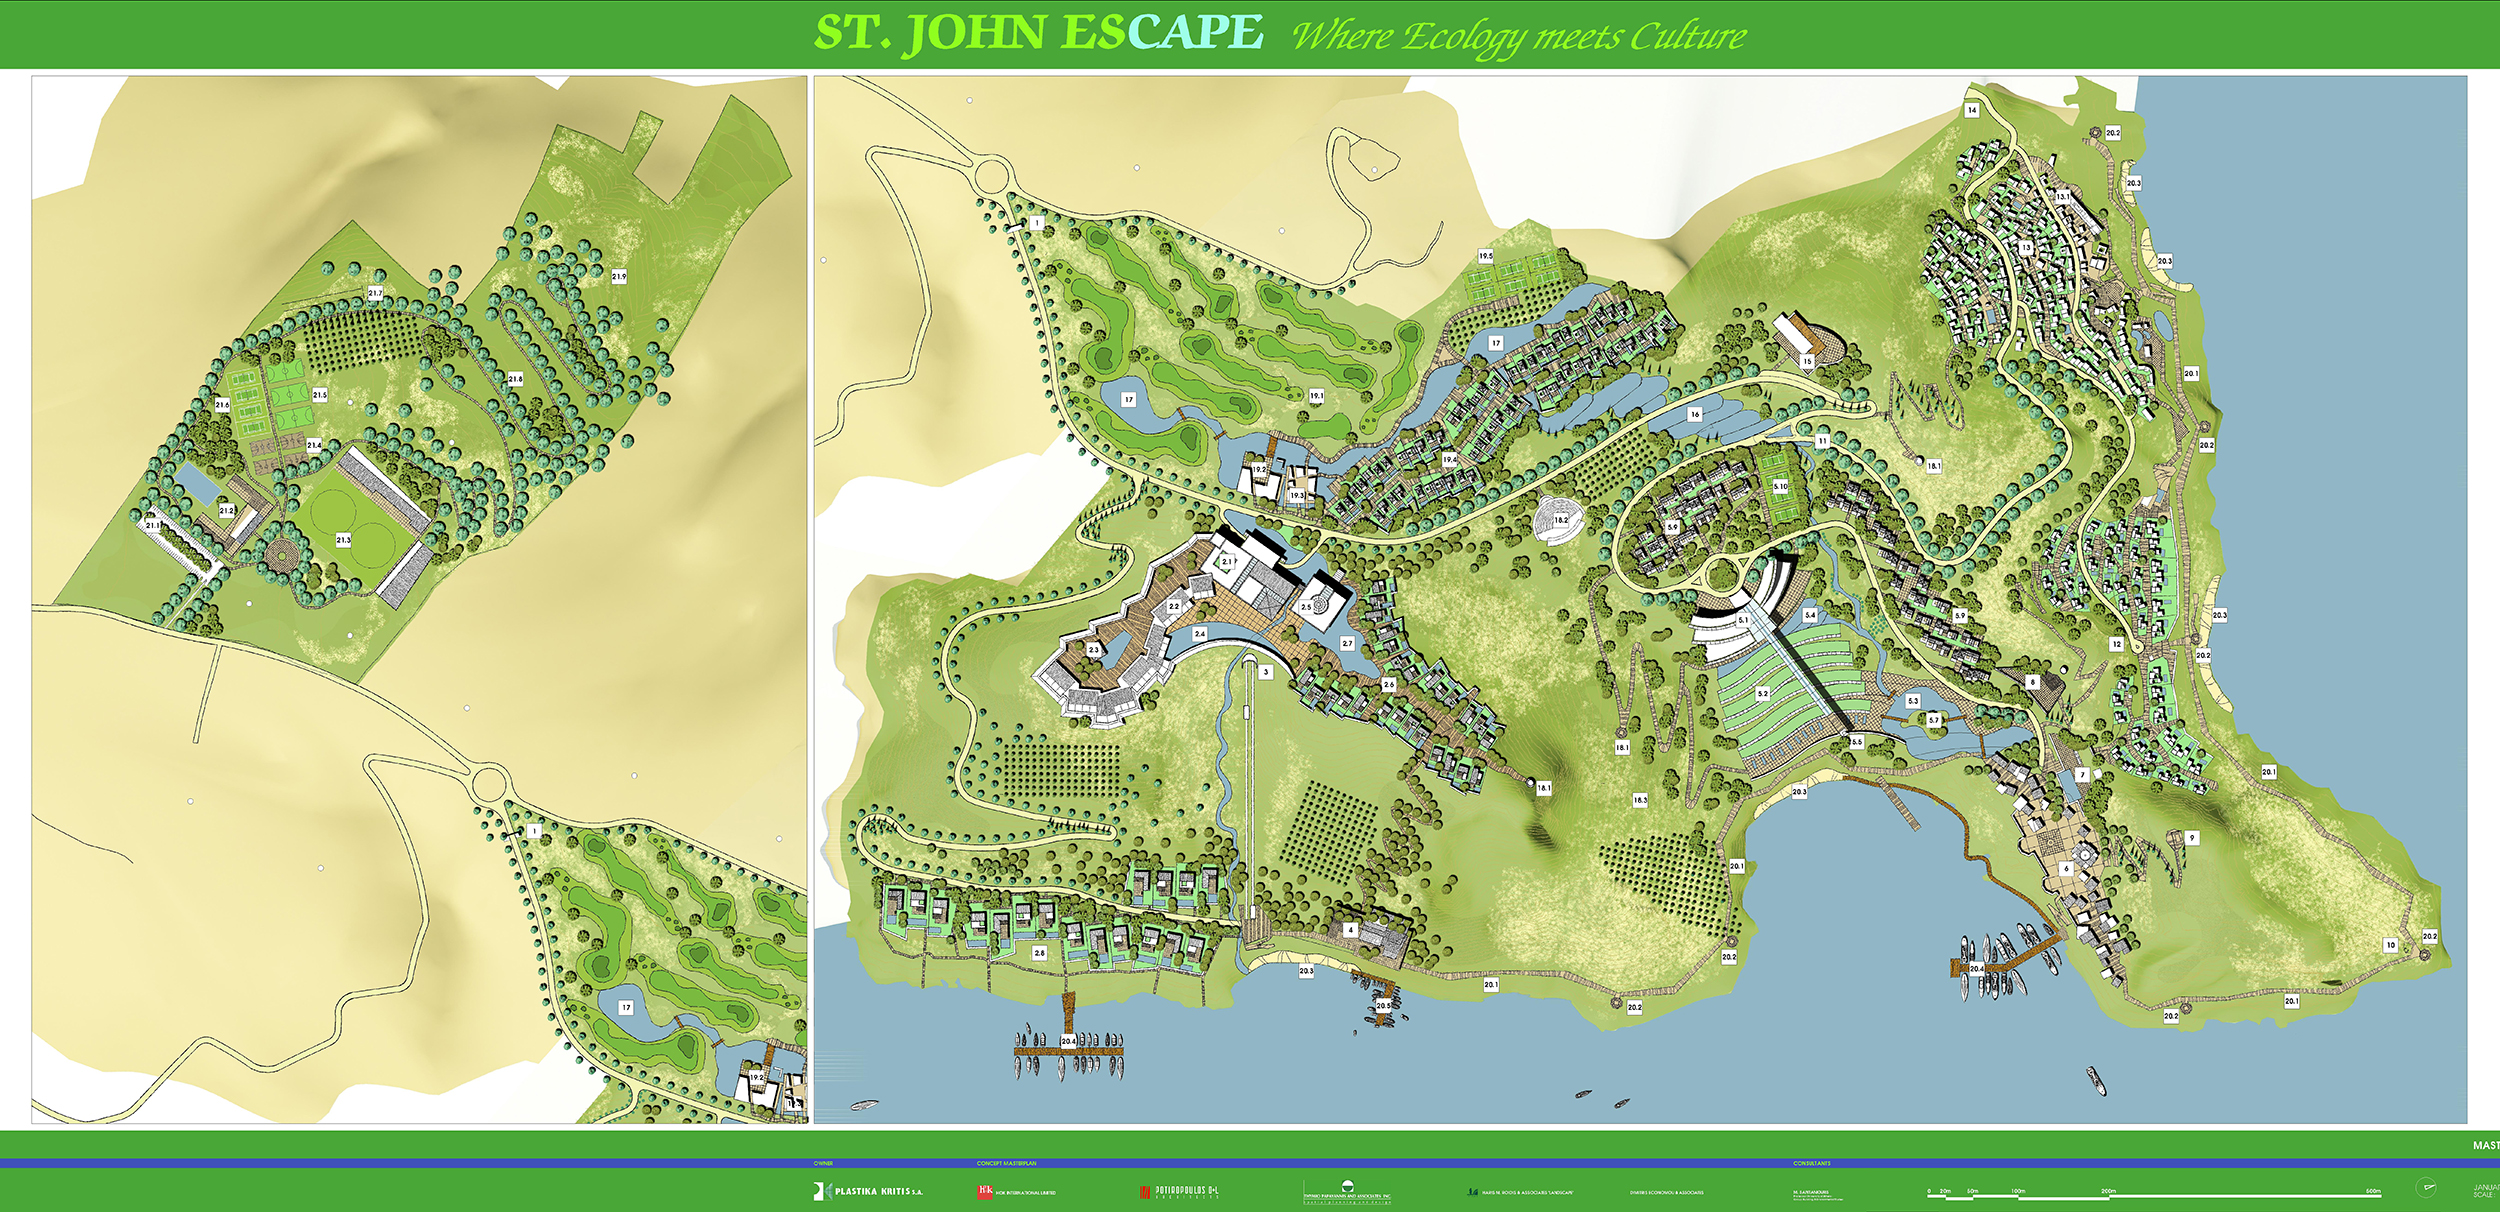 ST. JOHN ESCAPE